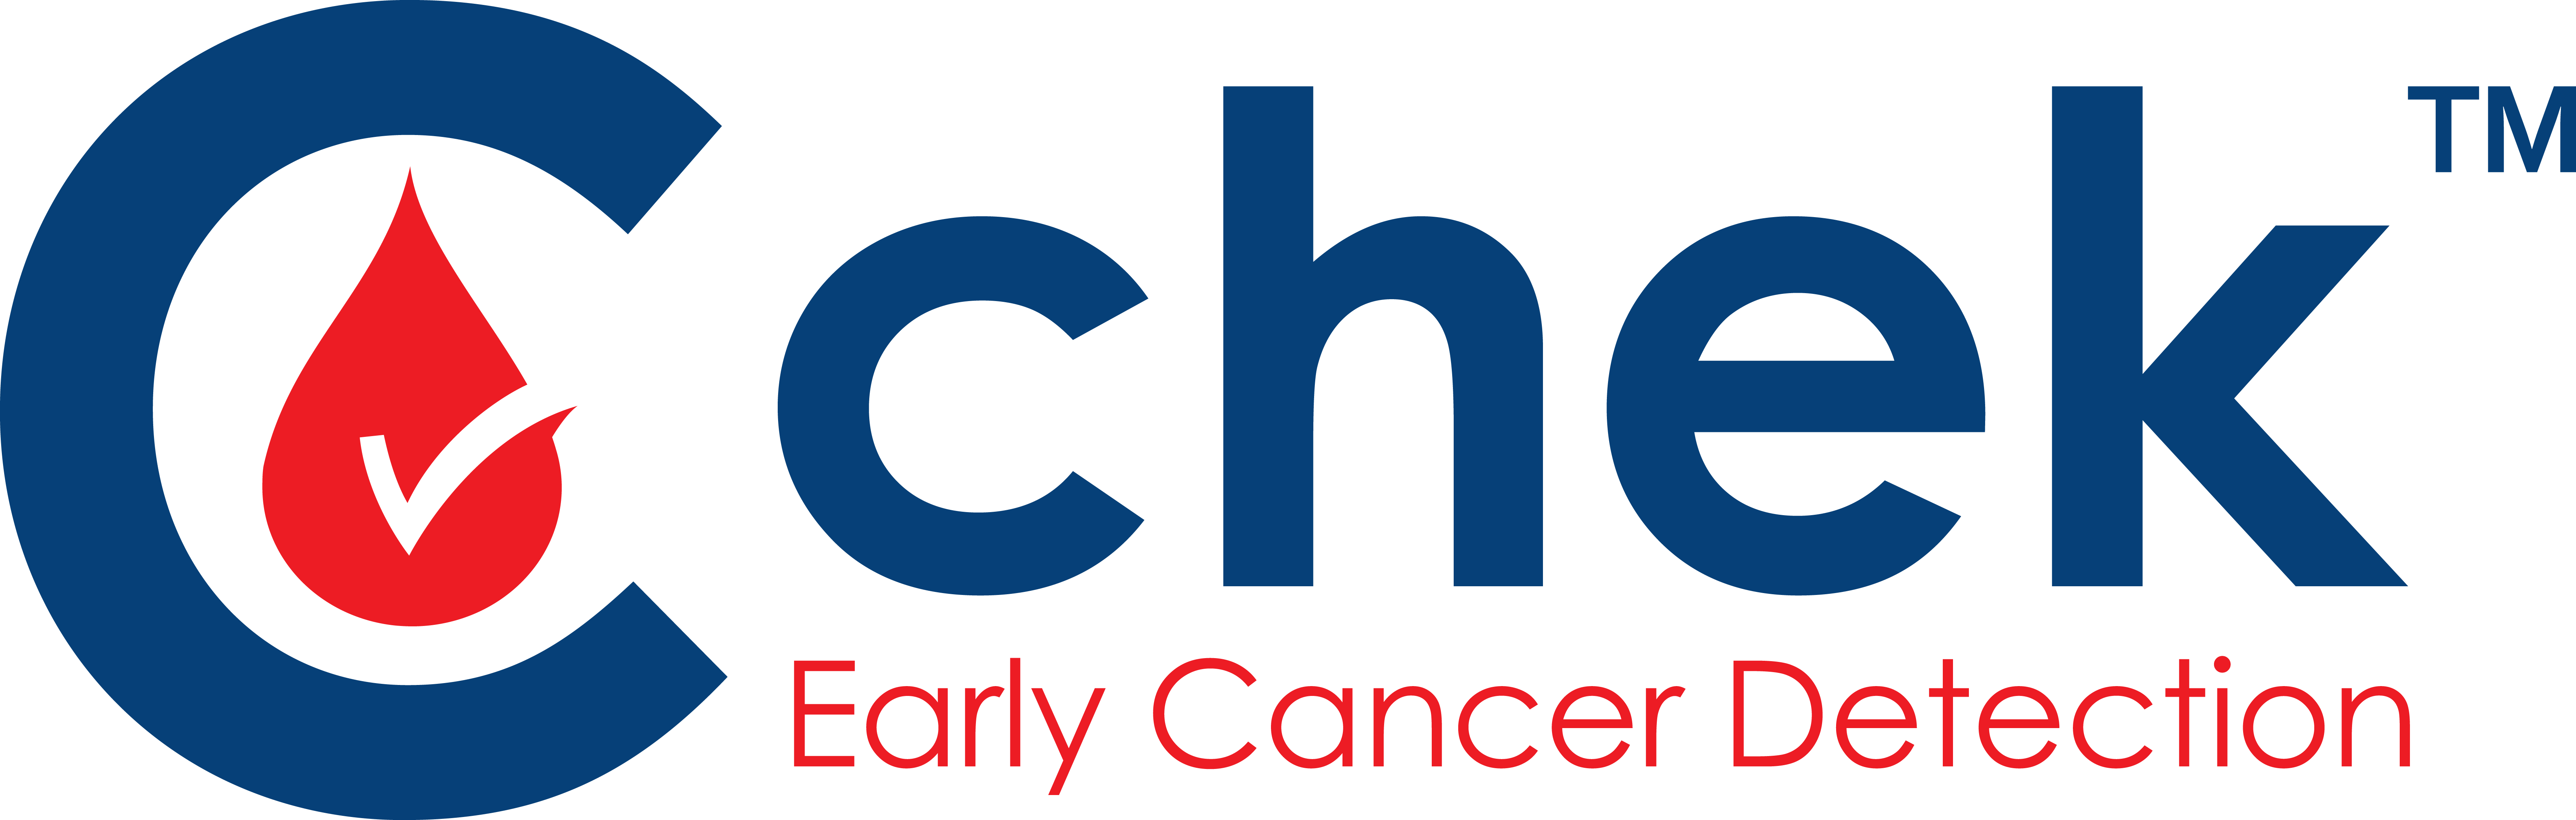 Jigsaw company lookup - Itus Corporation Is Developing A Platform Called Cchek A Series Of Inexpensive Non Invasive Blood Tests For The Early Detection Of Cancer Logo Check